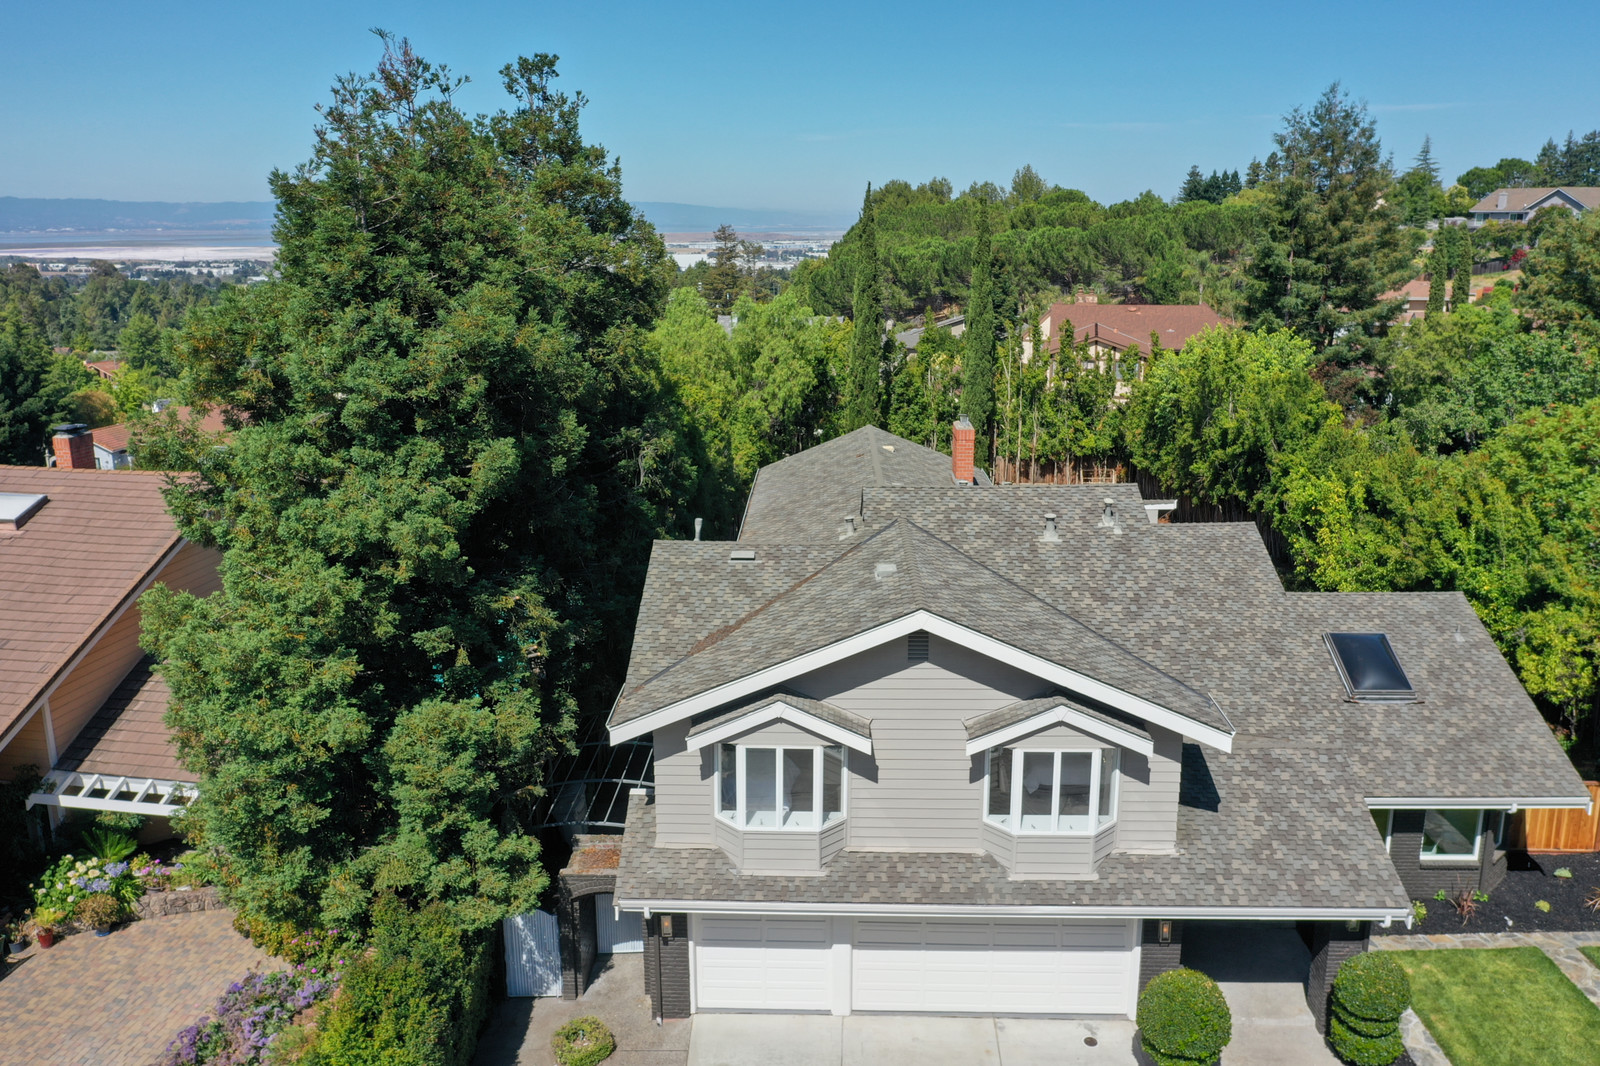 46245 Sentinel Dr. Fremont, CA 94539 new listings by Fremont Real Estate agent, Realtor, Broker, Sunil Sethi real estate